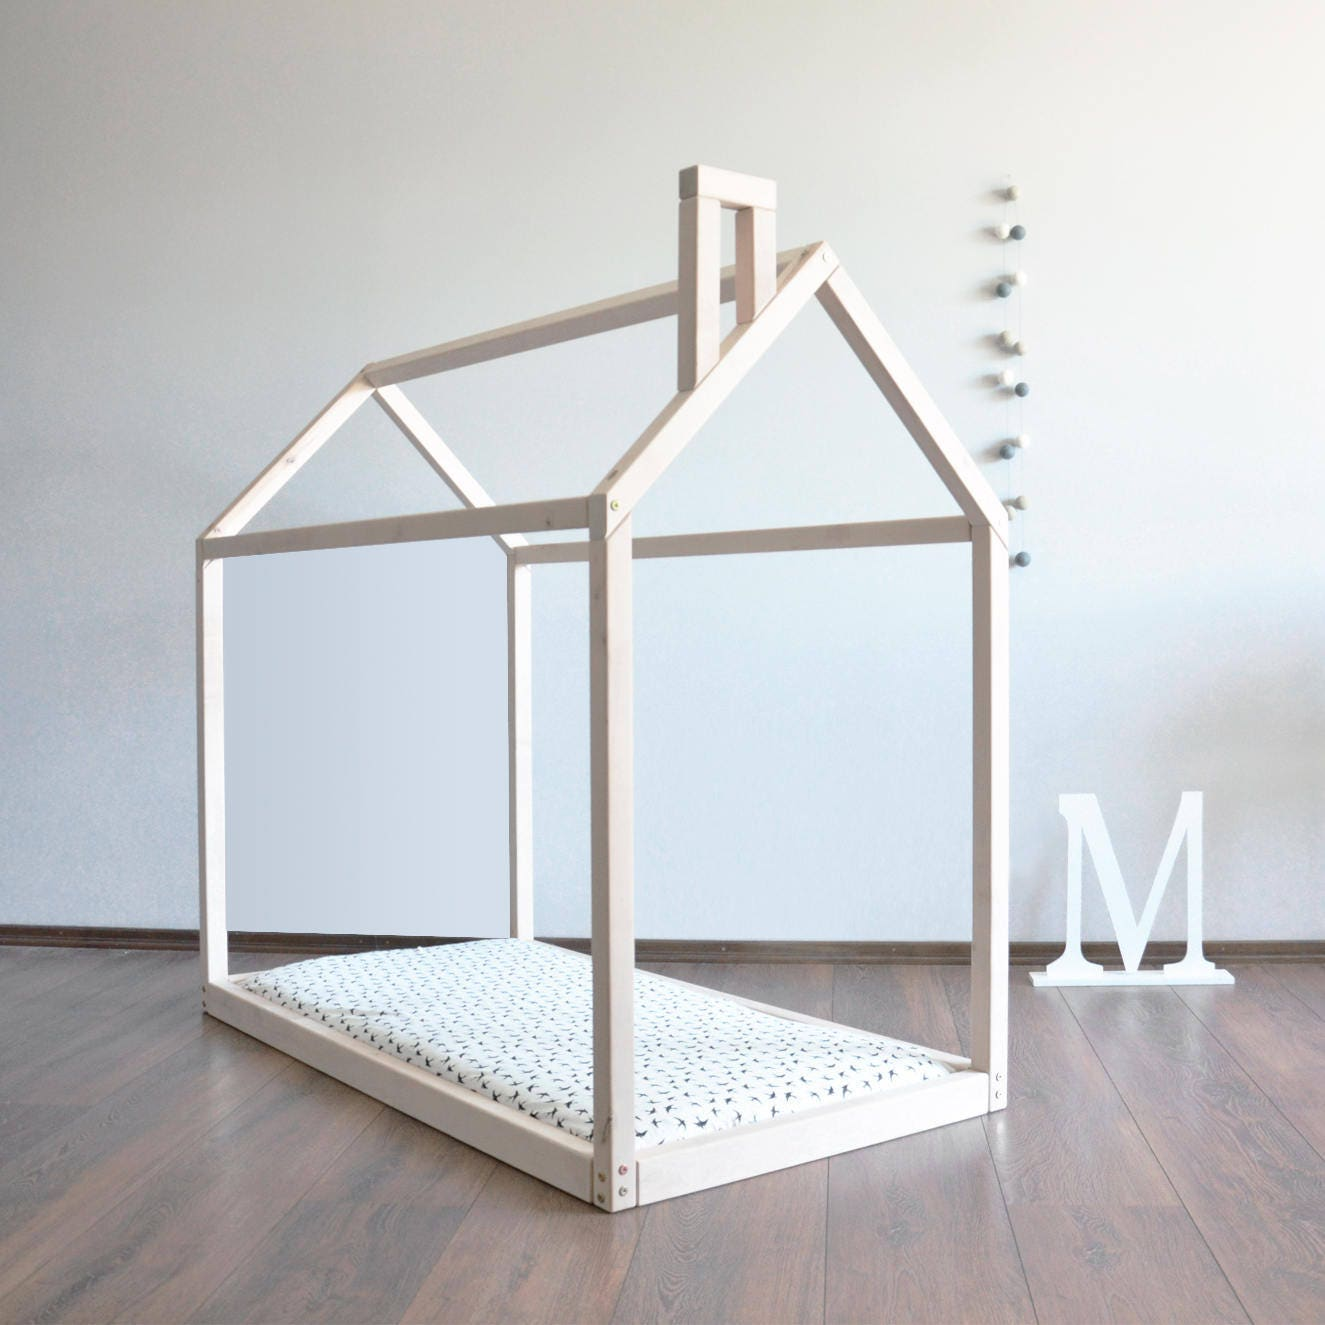 toddler bed montessori house bed frame baby bed crib size bed modernhouse unique. toddler montessori bed house bed frame baby bed single size